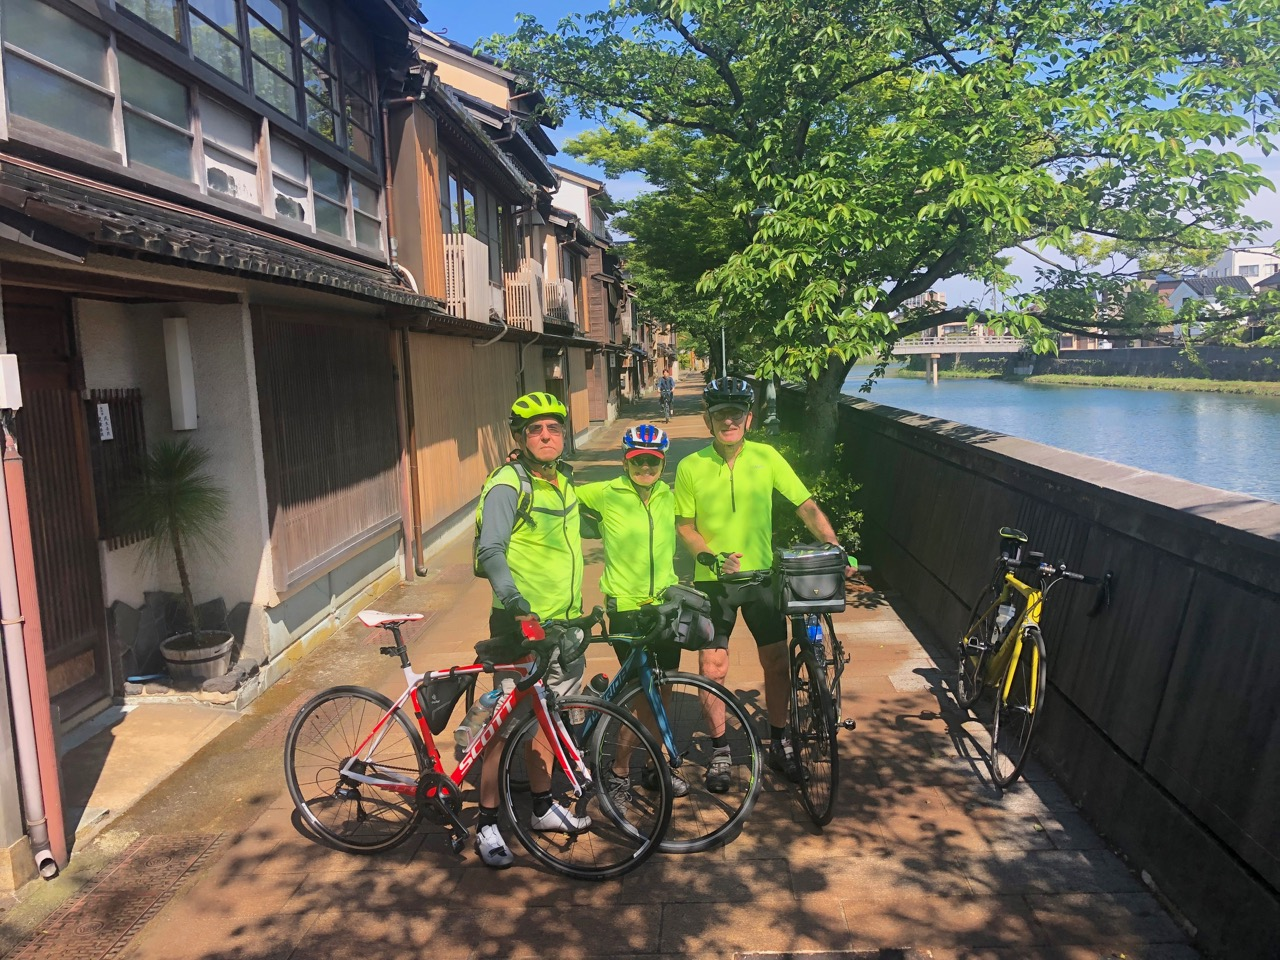 Cycling the canals in Kanazawa on our Noto ride.